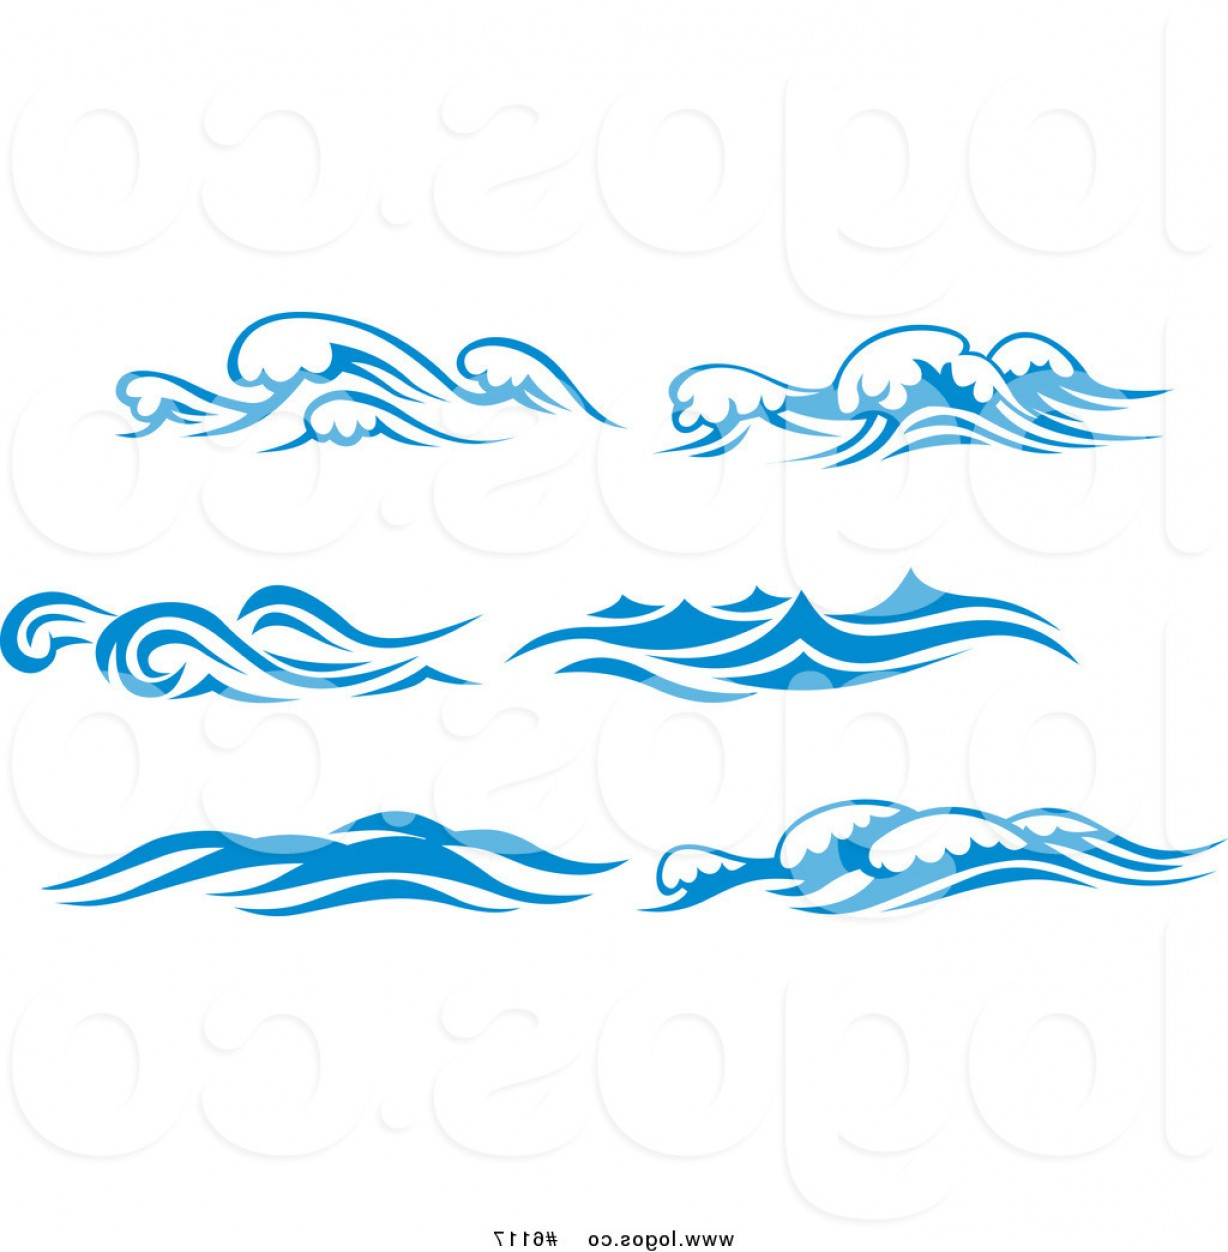 Ocean Water Clip Art Vector: Royalty Free Clip Art Vector Logos Of Blue And White Ocean Surf Waves By Vector Tradition Sm